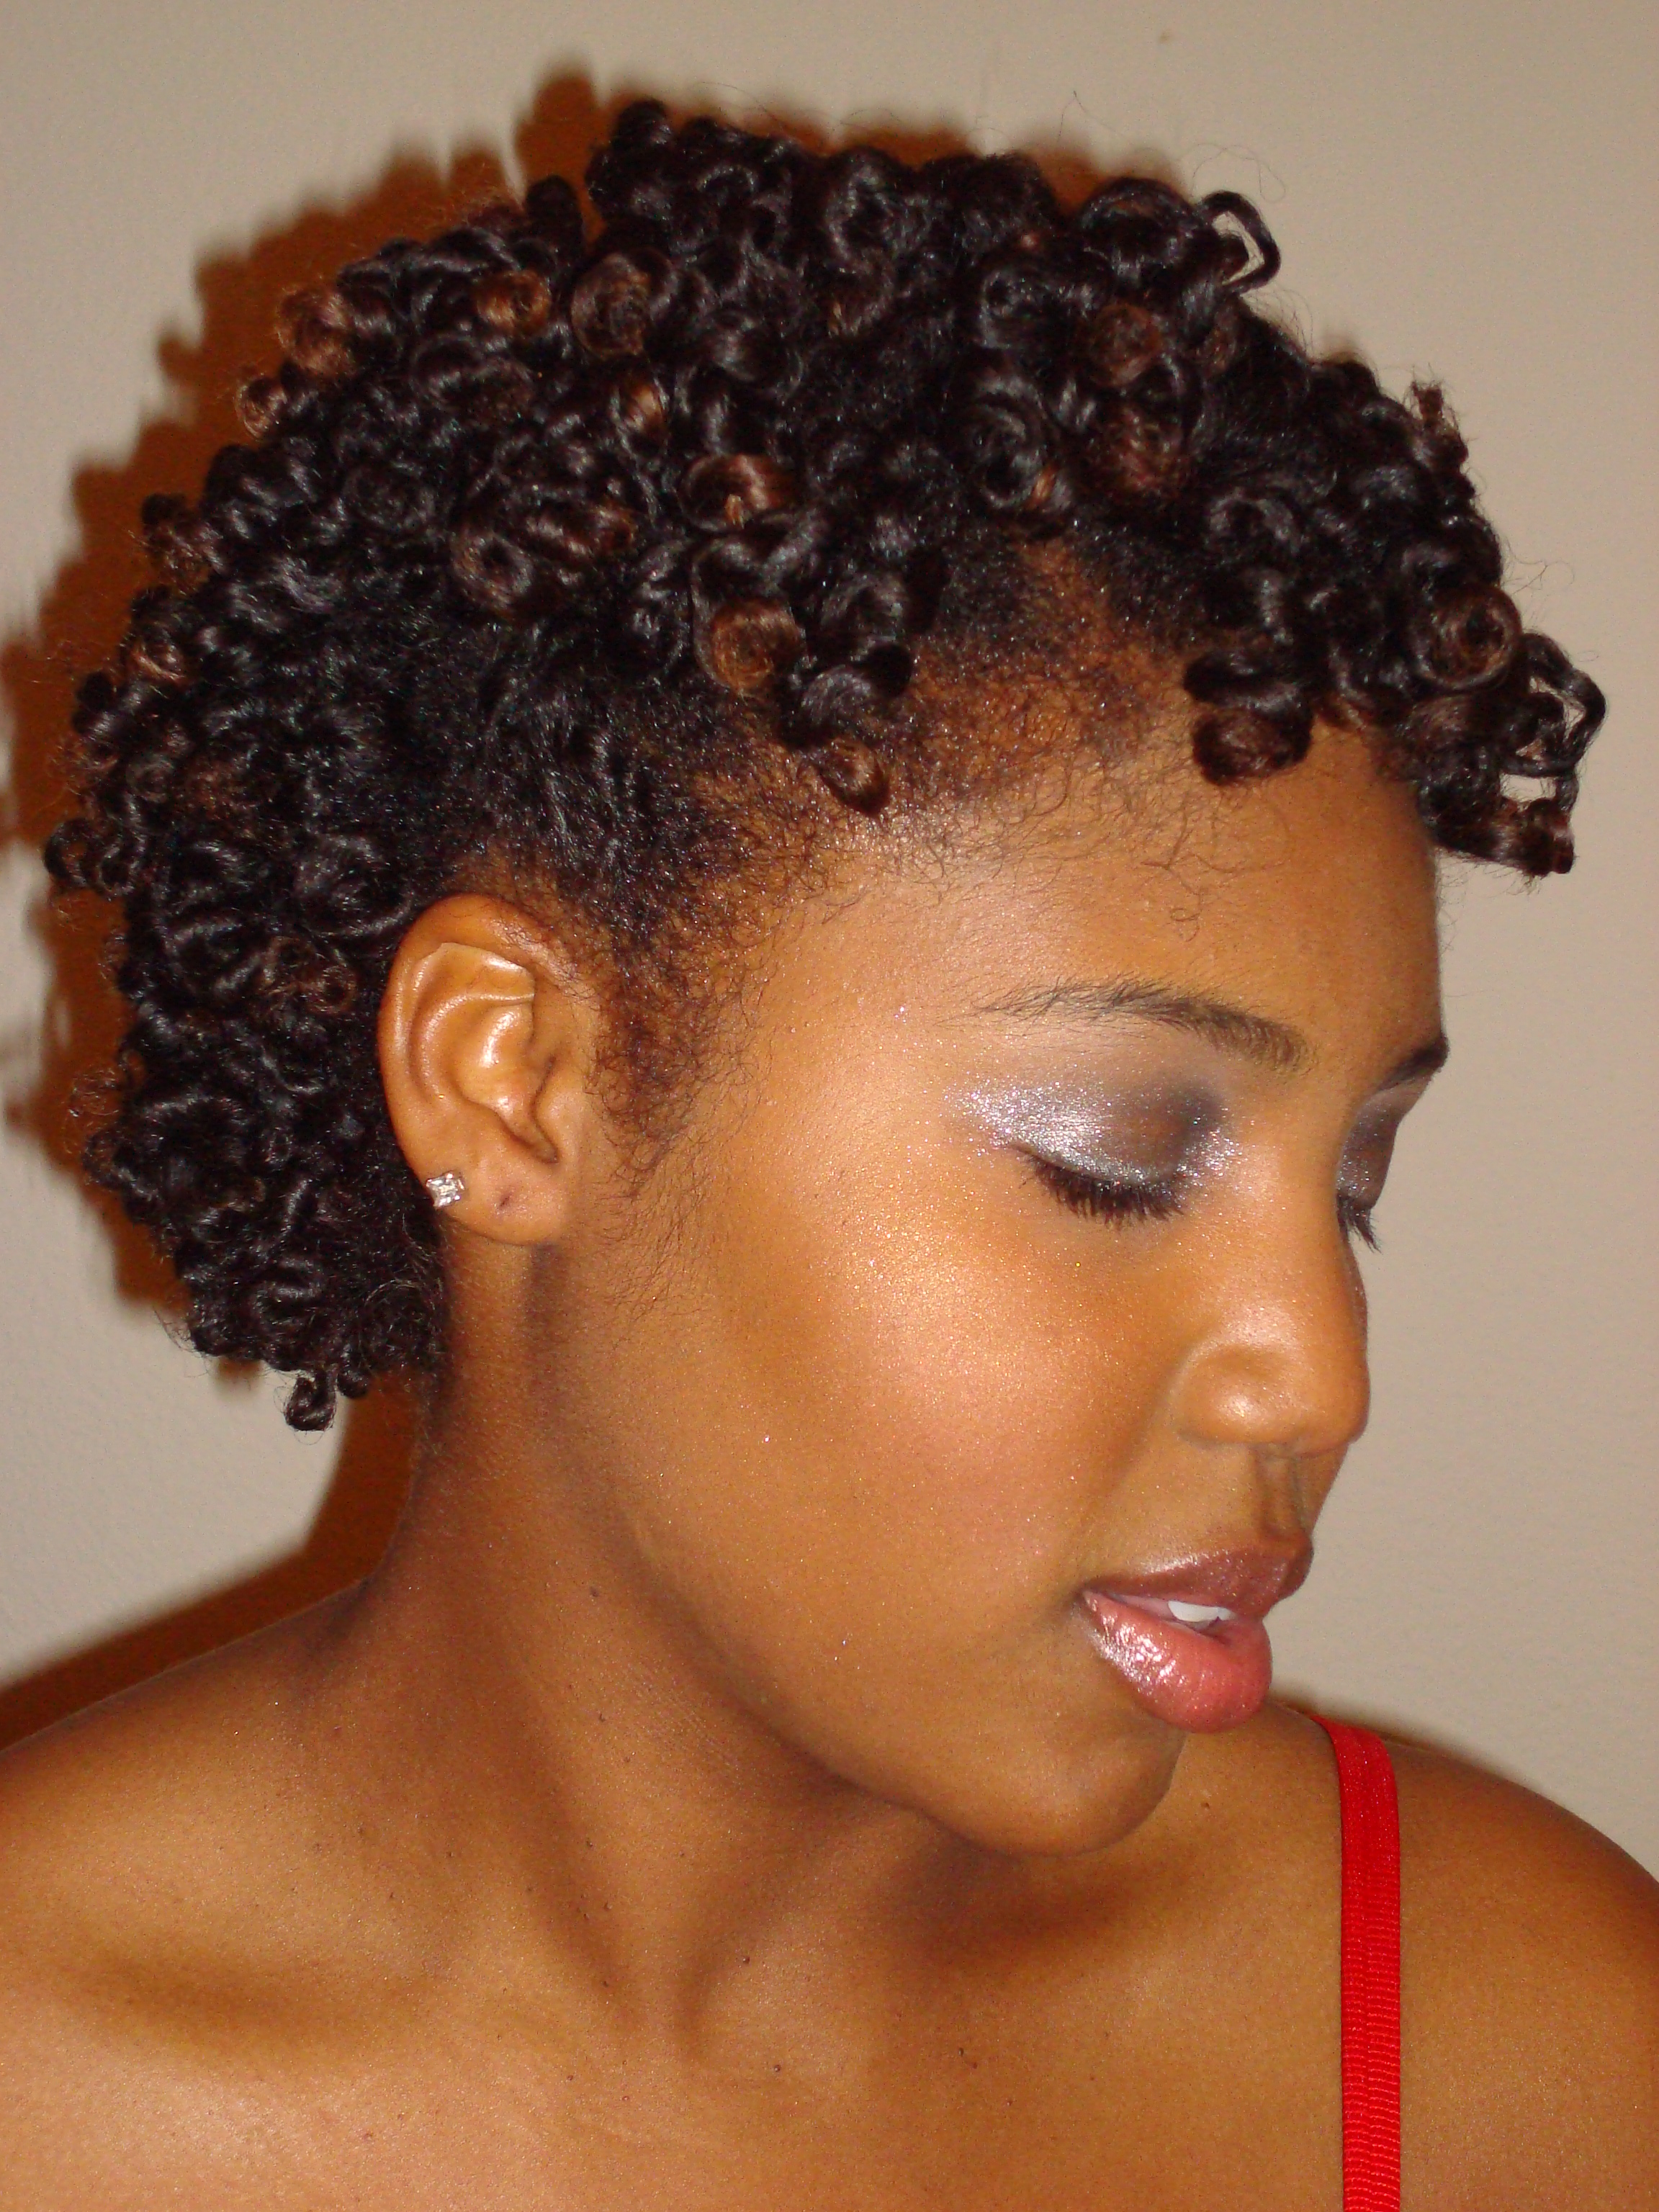 natural hair At khamit kinks, we enhance your natural beauty by treating your hair with the love it deserves our goal is to compliment your unique, beautiful self.